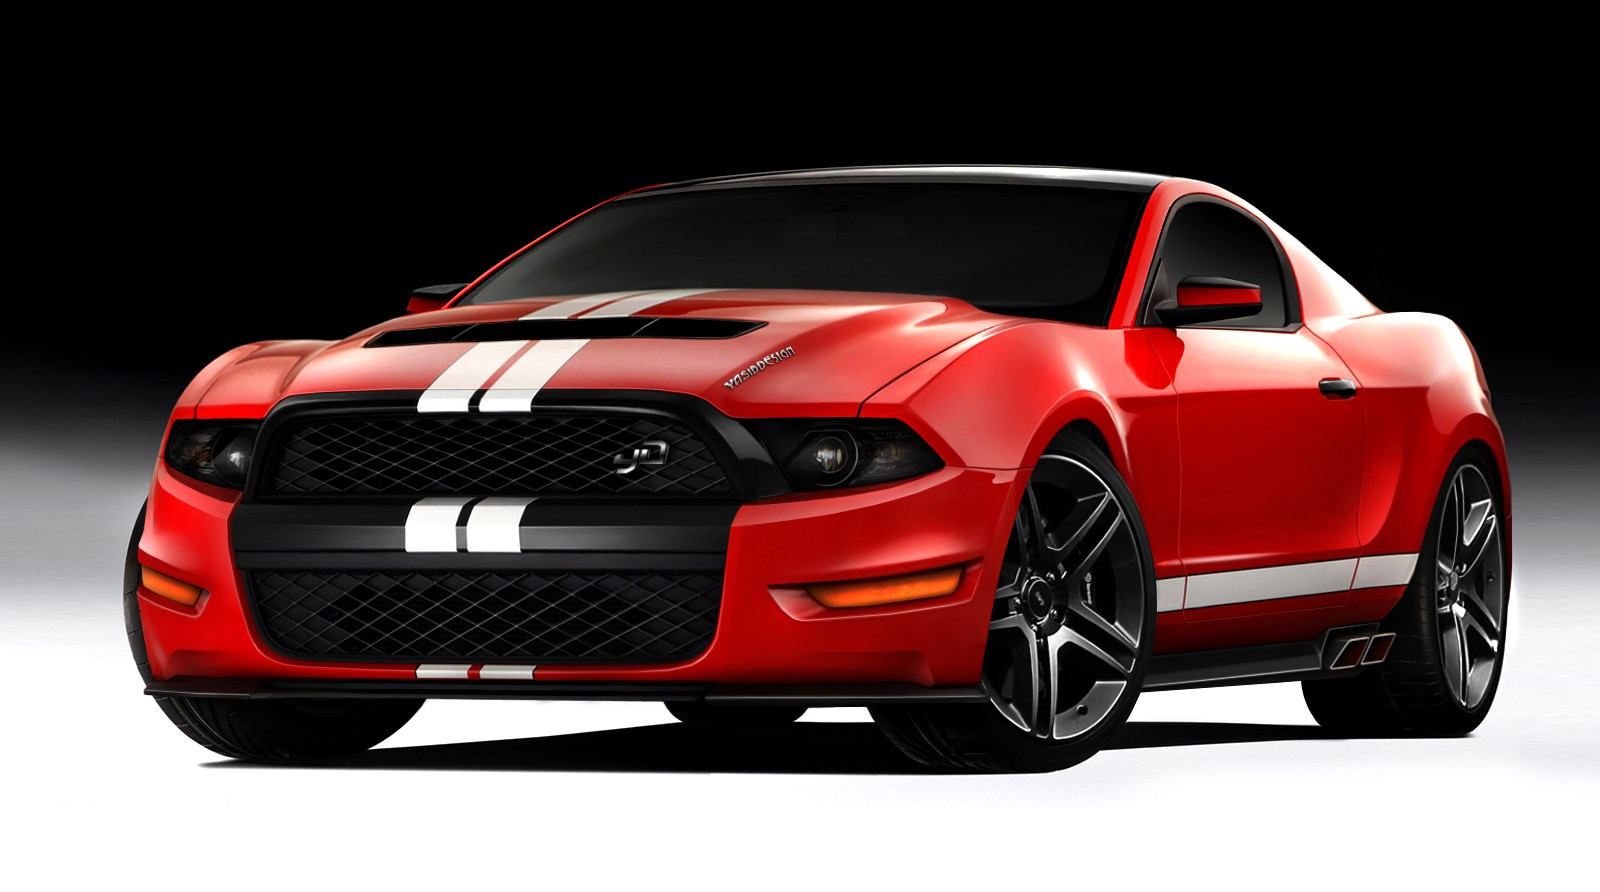 Ford Wallpaper 5493 Hd Wallpapers in Cars   Imagescicom 1600x892